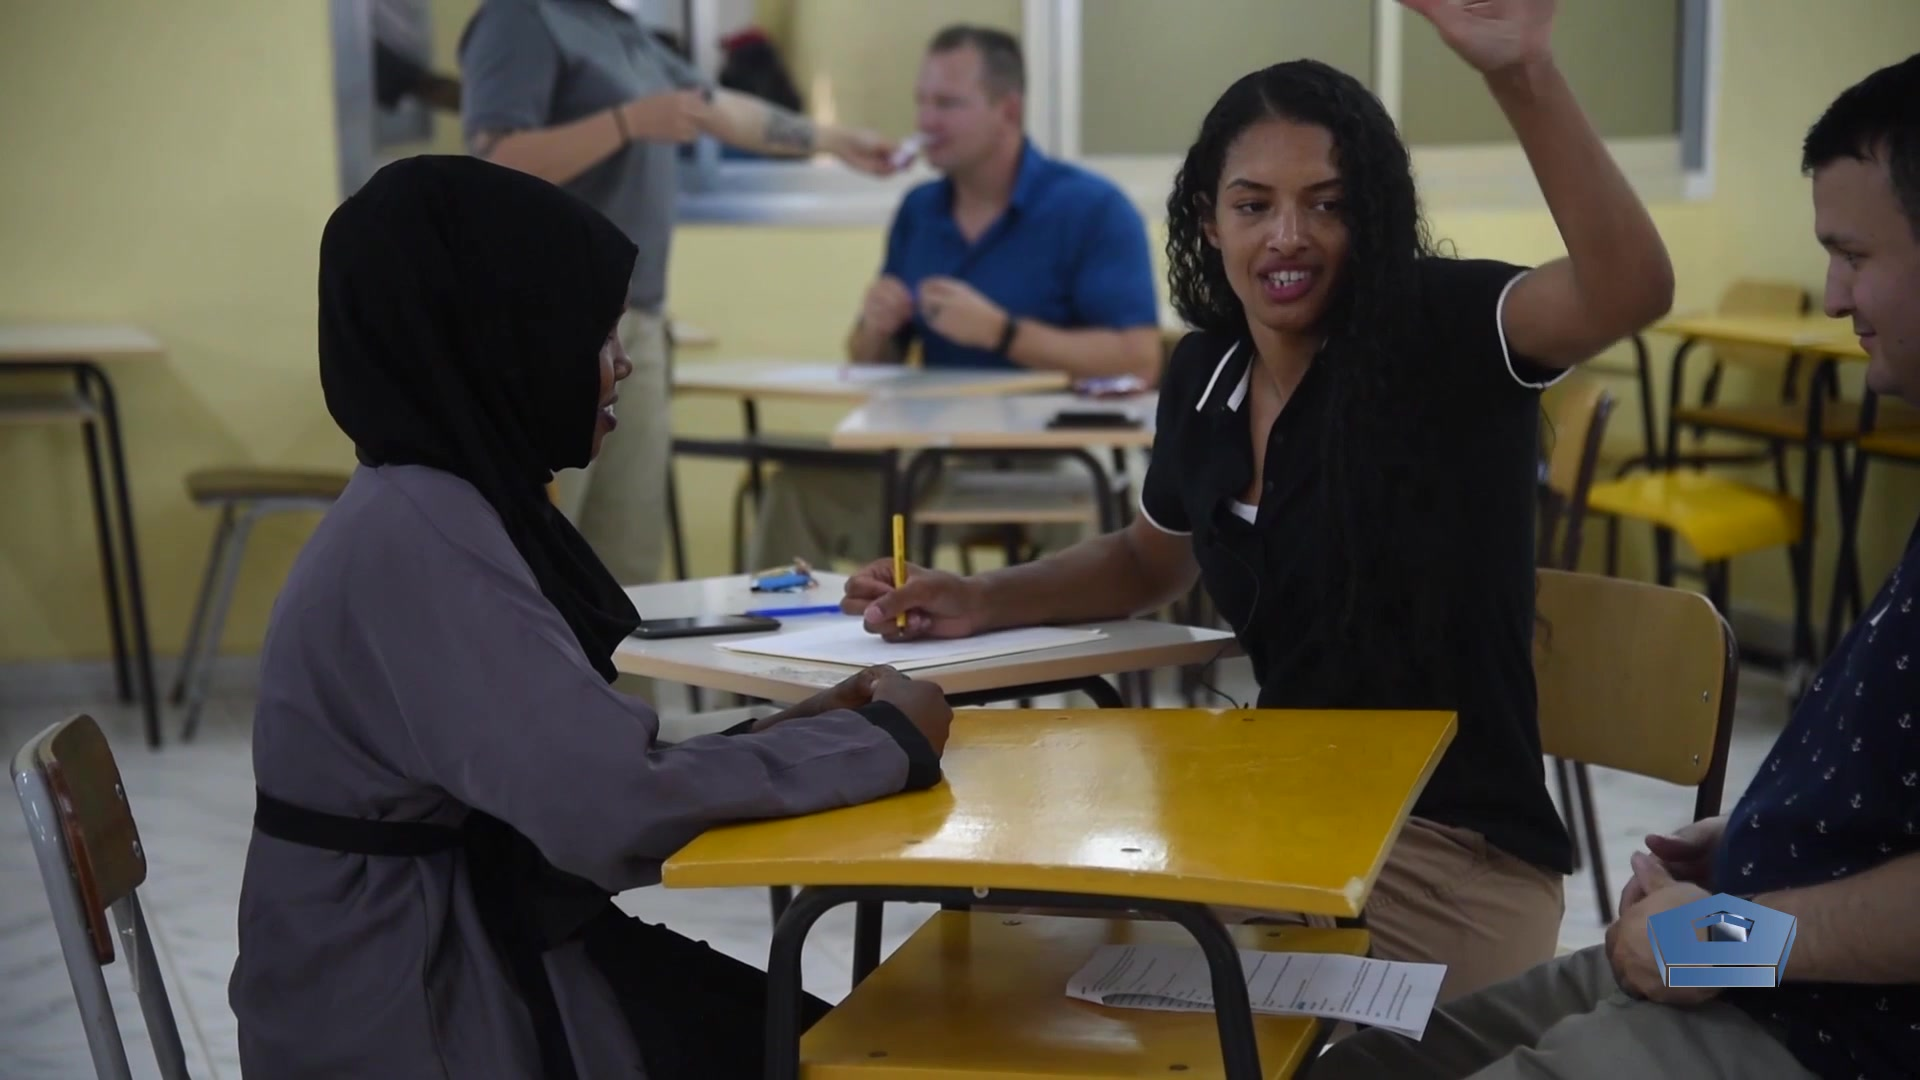 Soldiers from the 403rd Civil Affairs Battalion are deployed to the African continent to support Combined Joint Task Force Horn of Africa. For the past six months they've been doing something rather special — teaching English to Moroccan nursing students so they can  better interact with English-speaking patients and physicians.